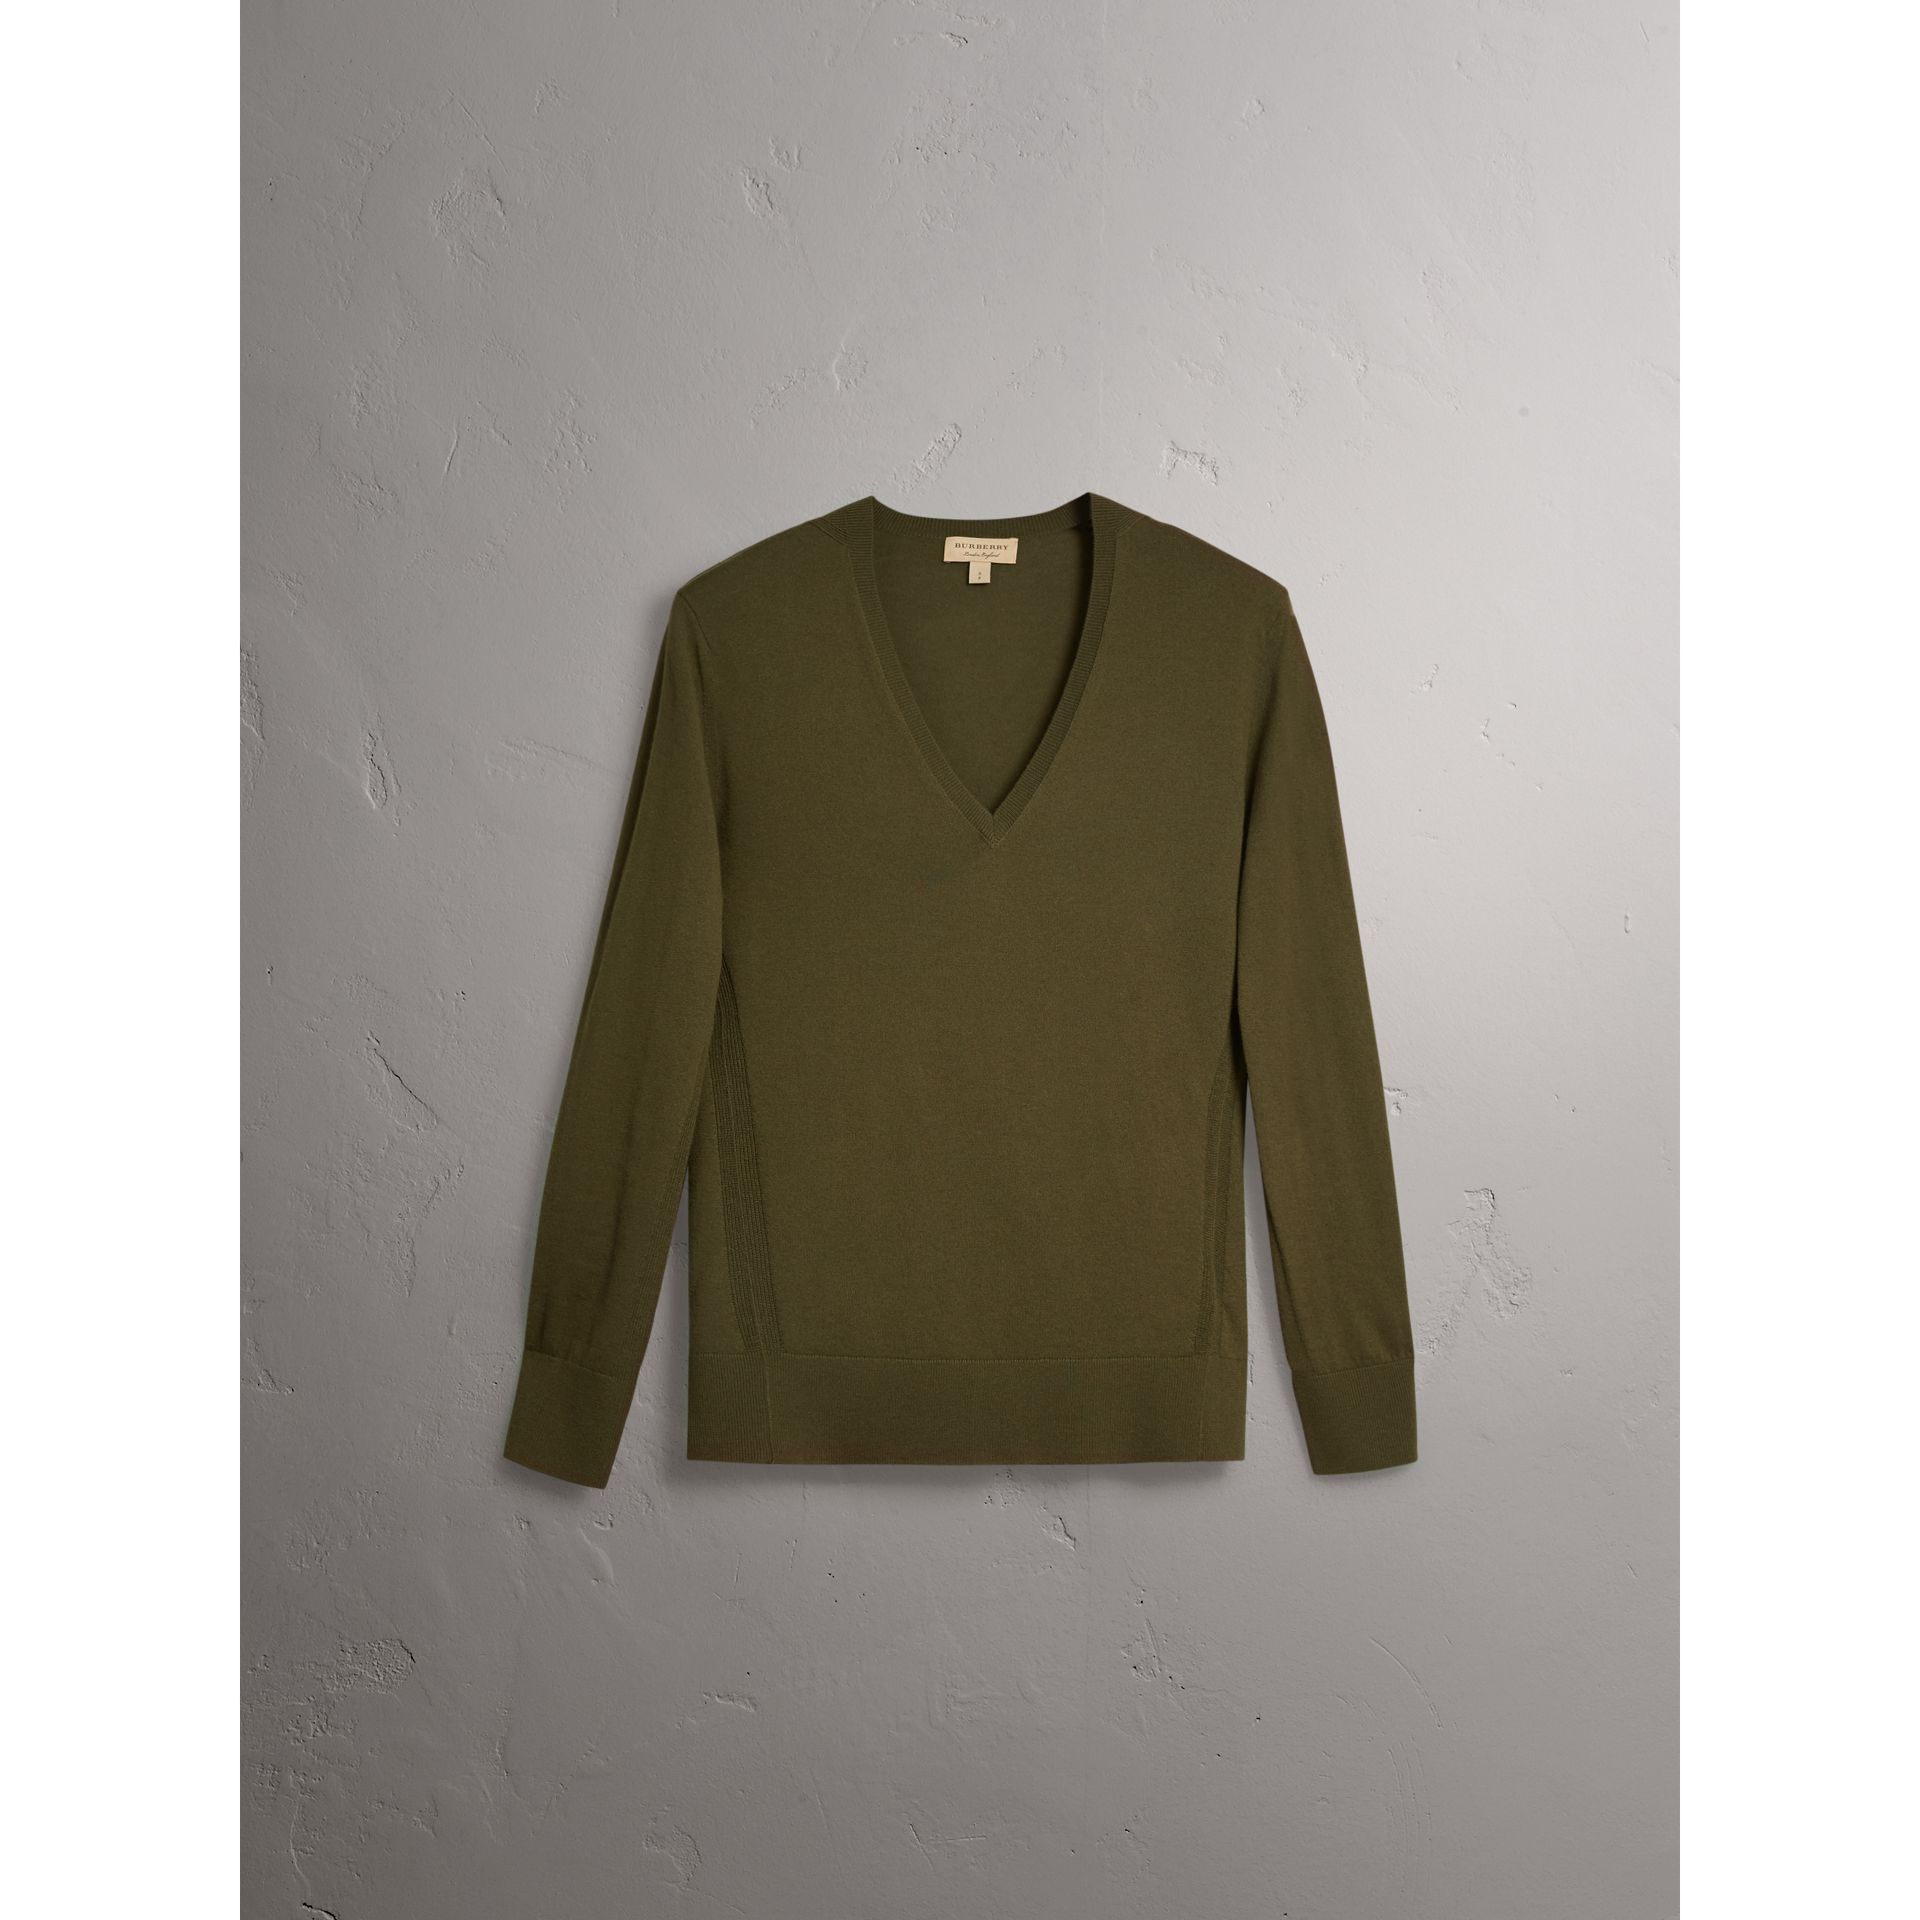 Check Detail Cashmere V-neck Sweater in Khaki Green - Women | Burberry - gallery image 4